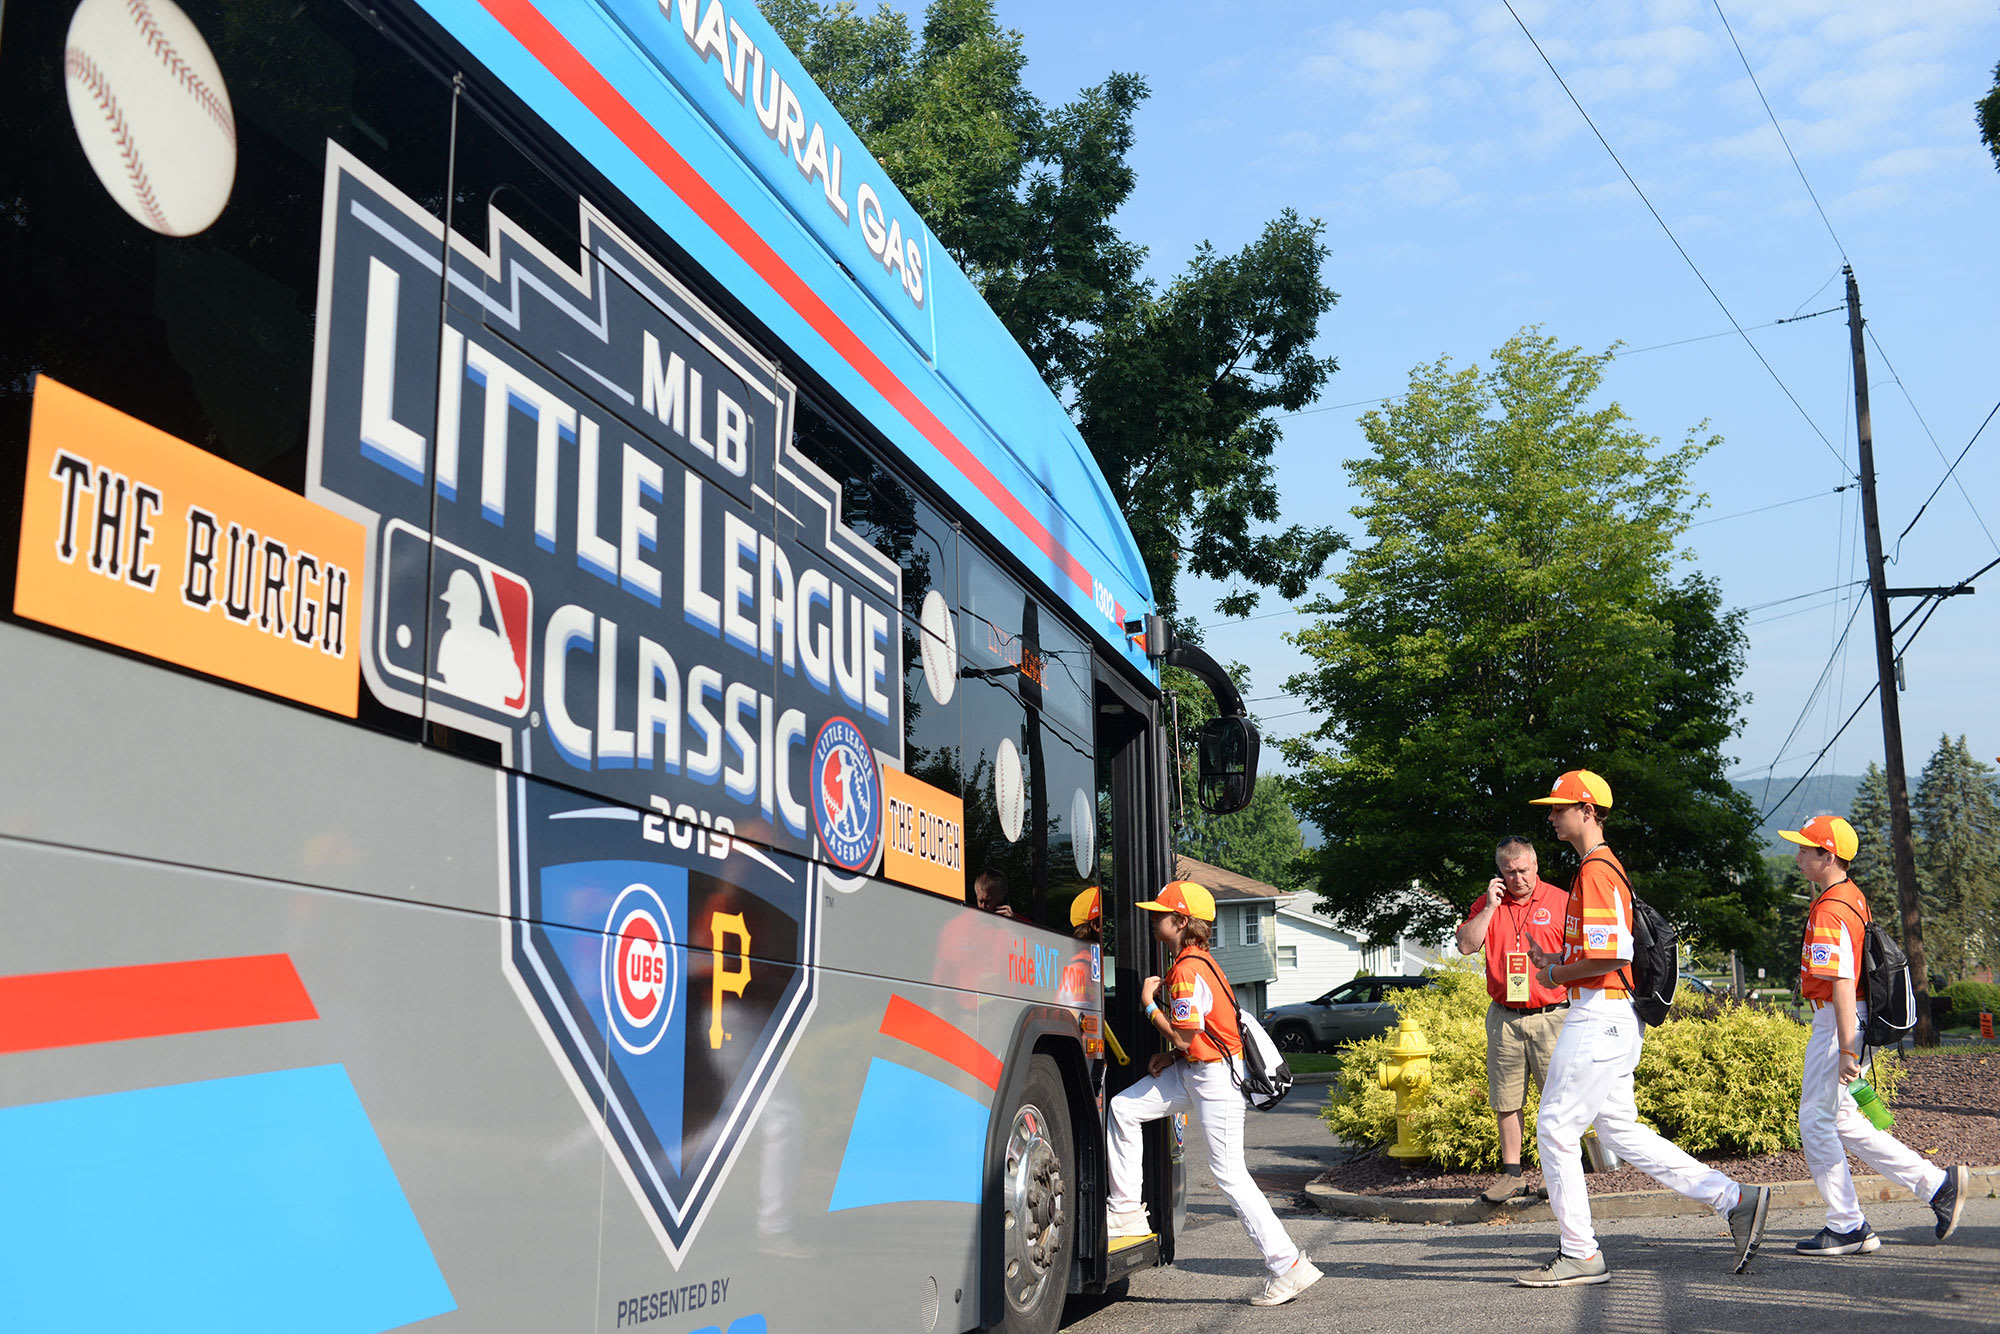 SW players getting on bus to pick up MLB players